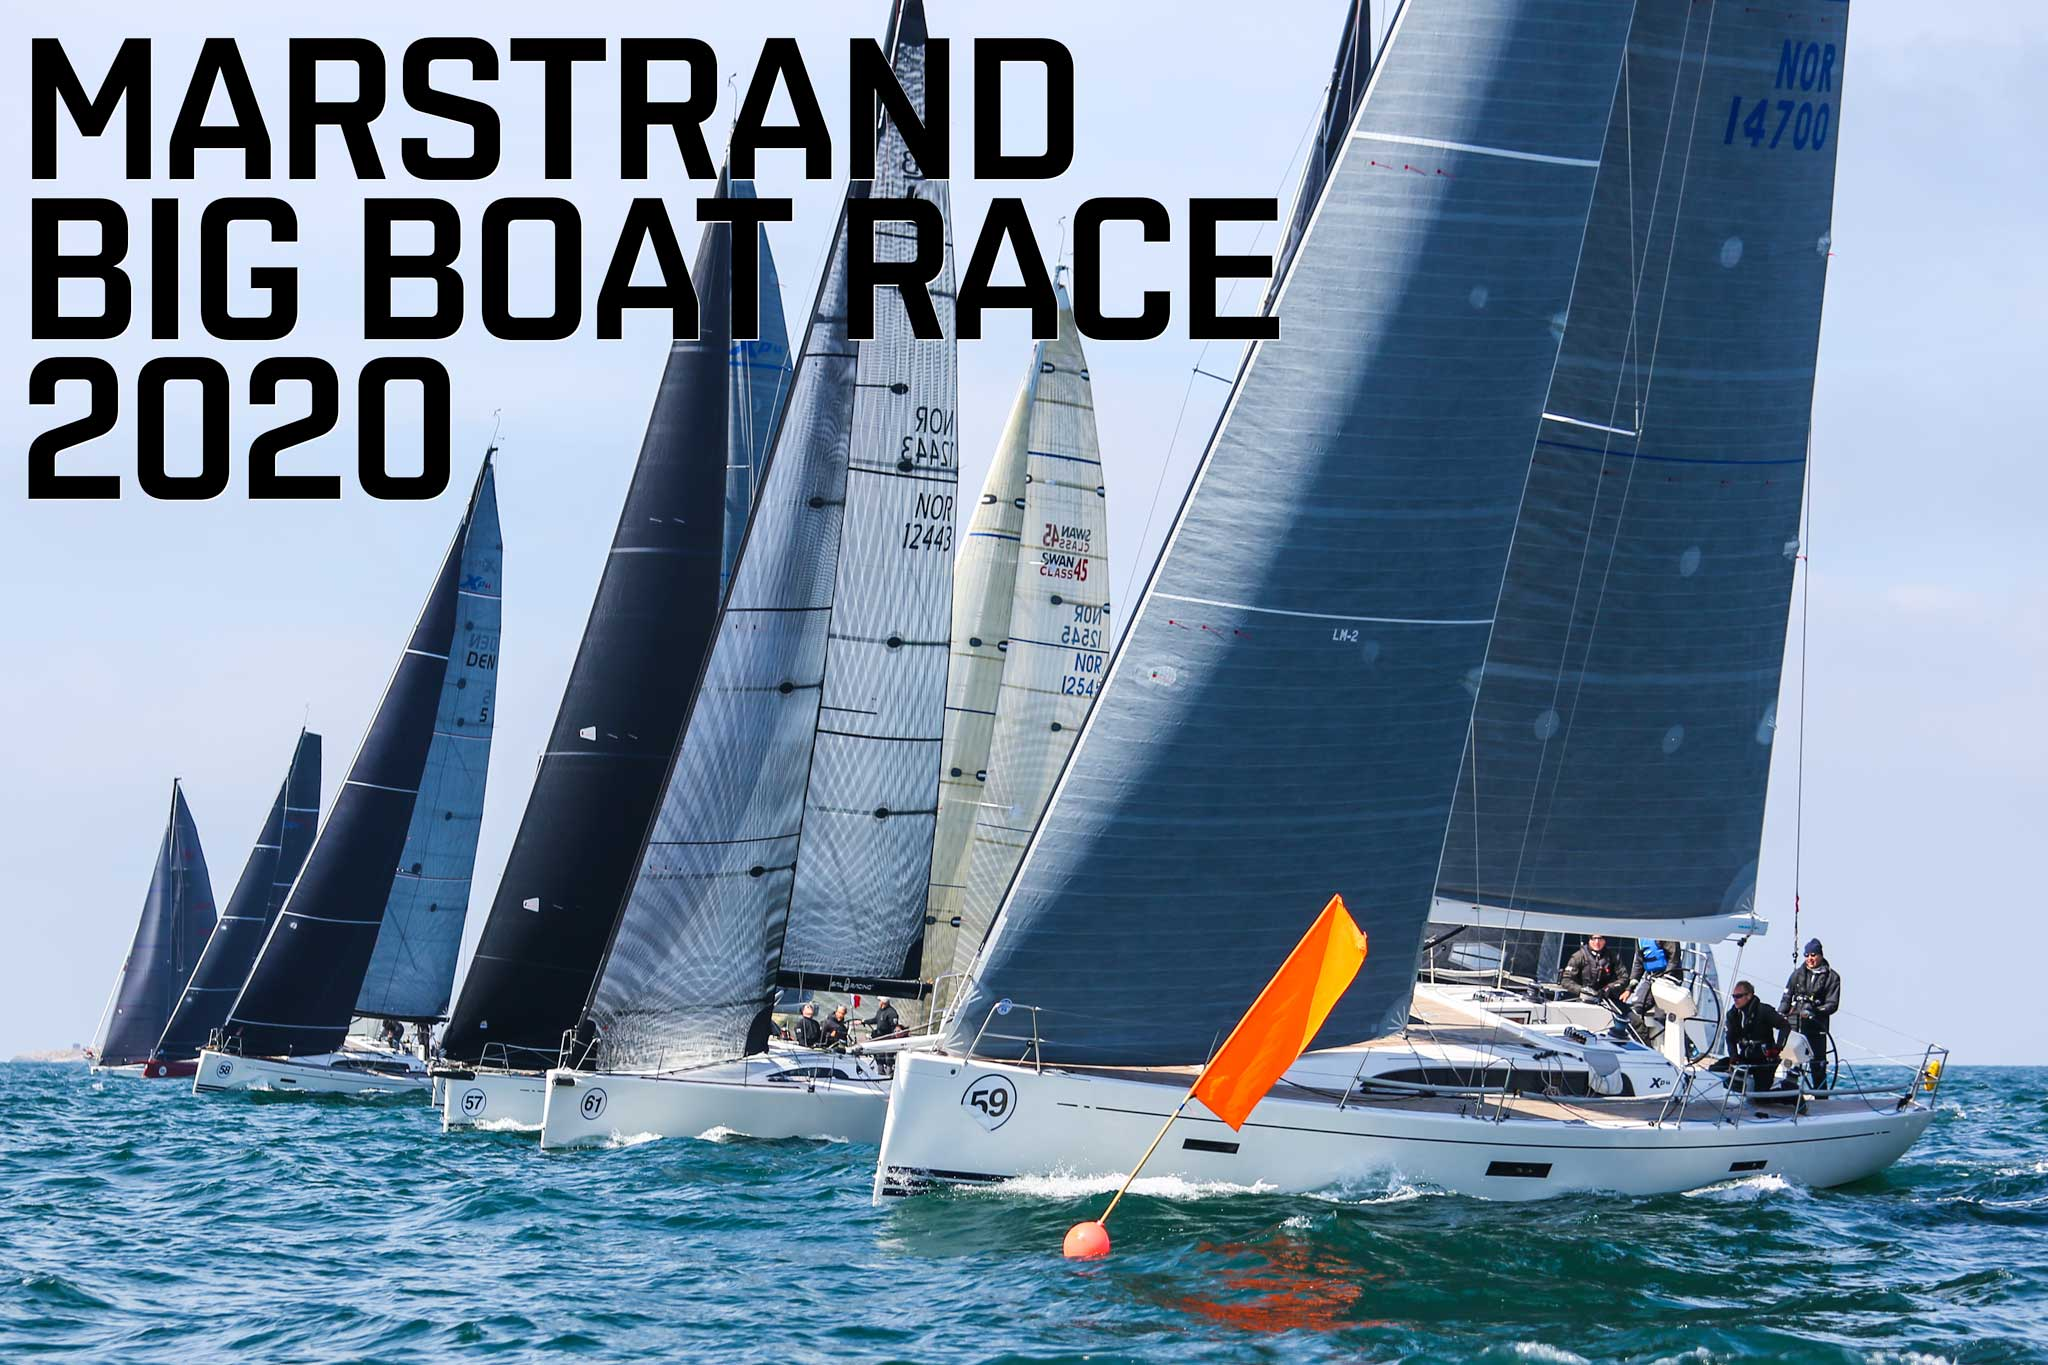 Marstrand Big Boat Race 2020 | registration is open